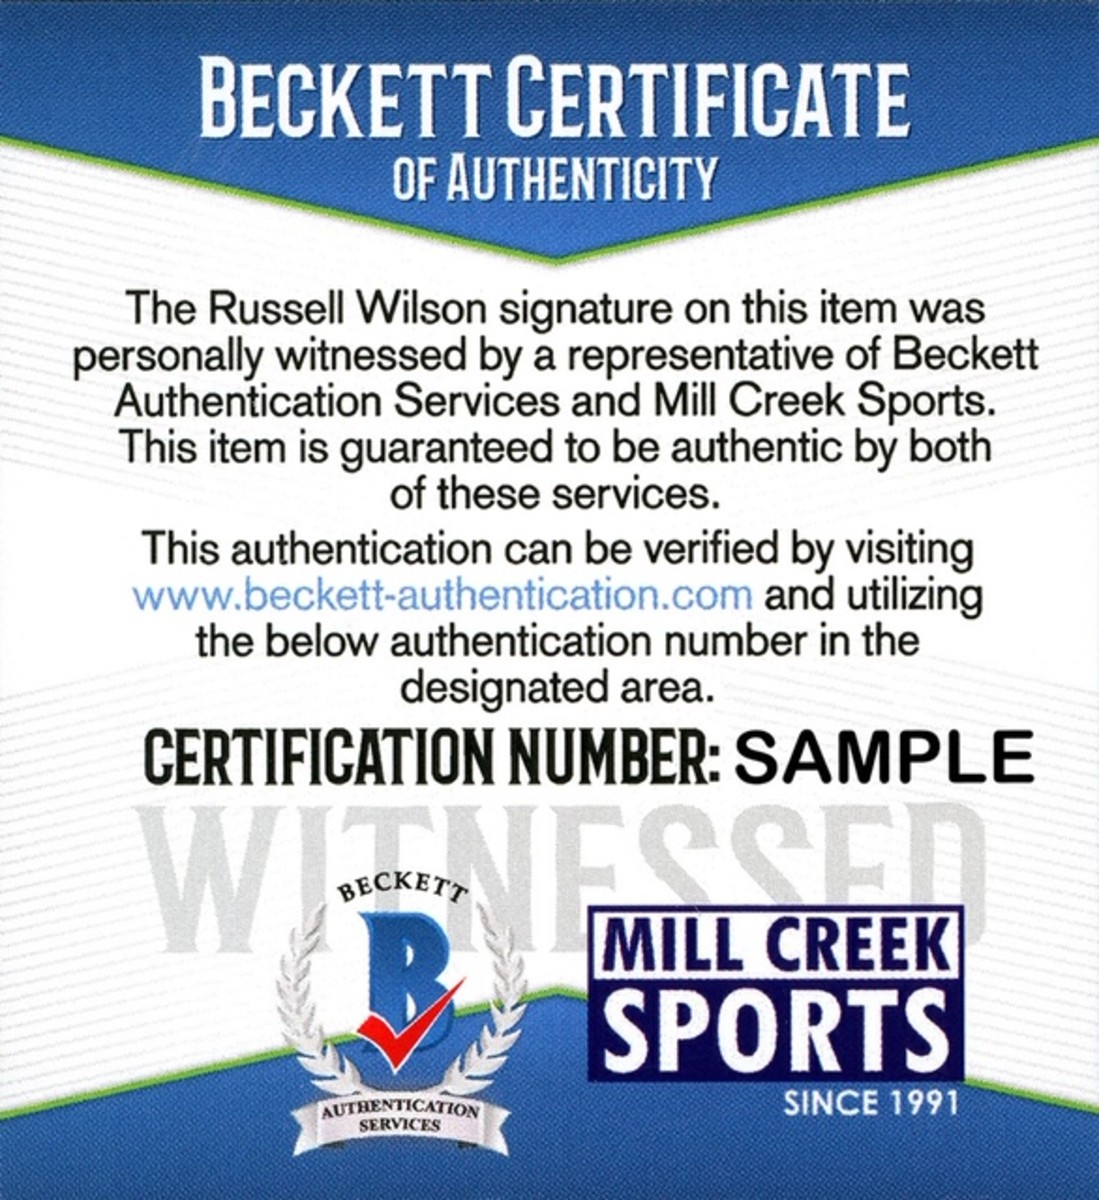 9. Mill Creek Sports and BAS agreement